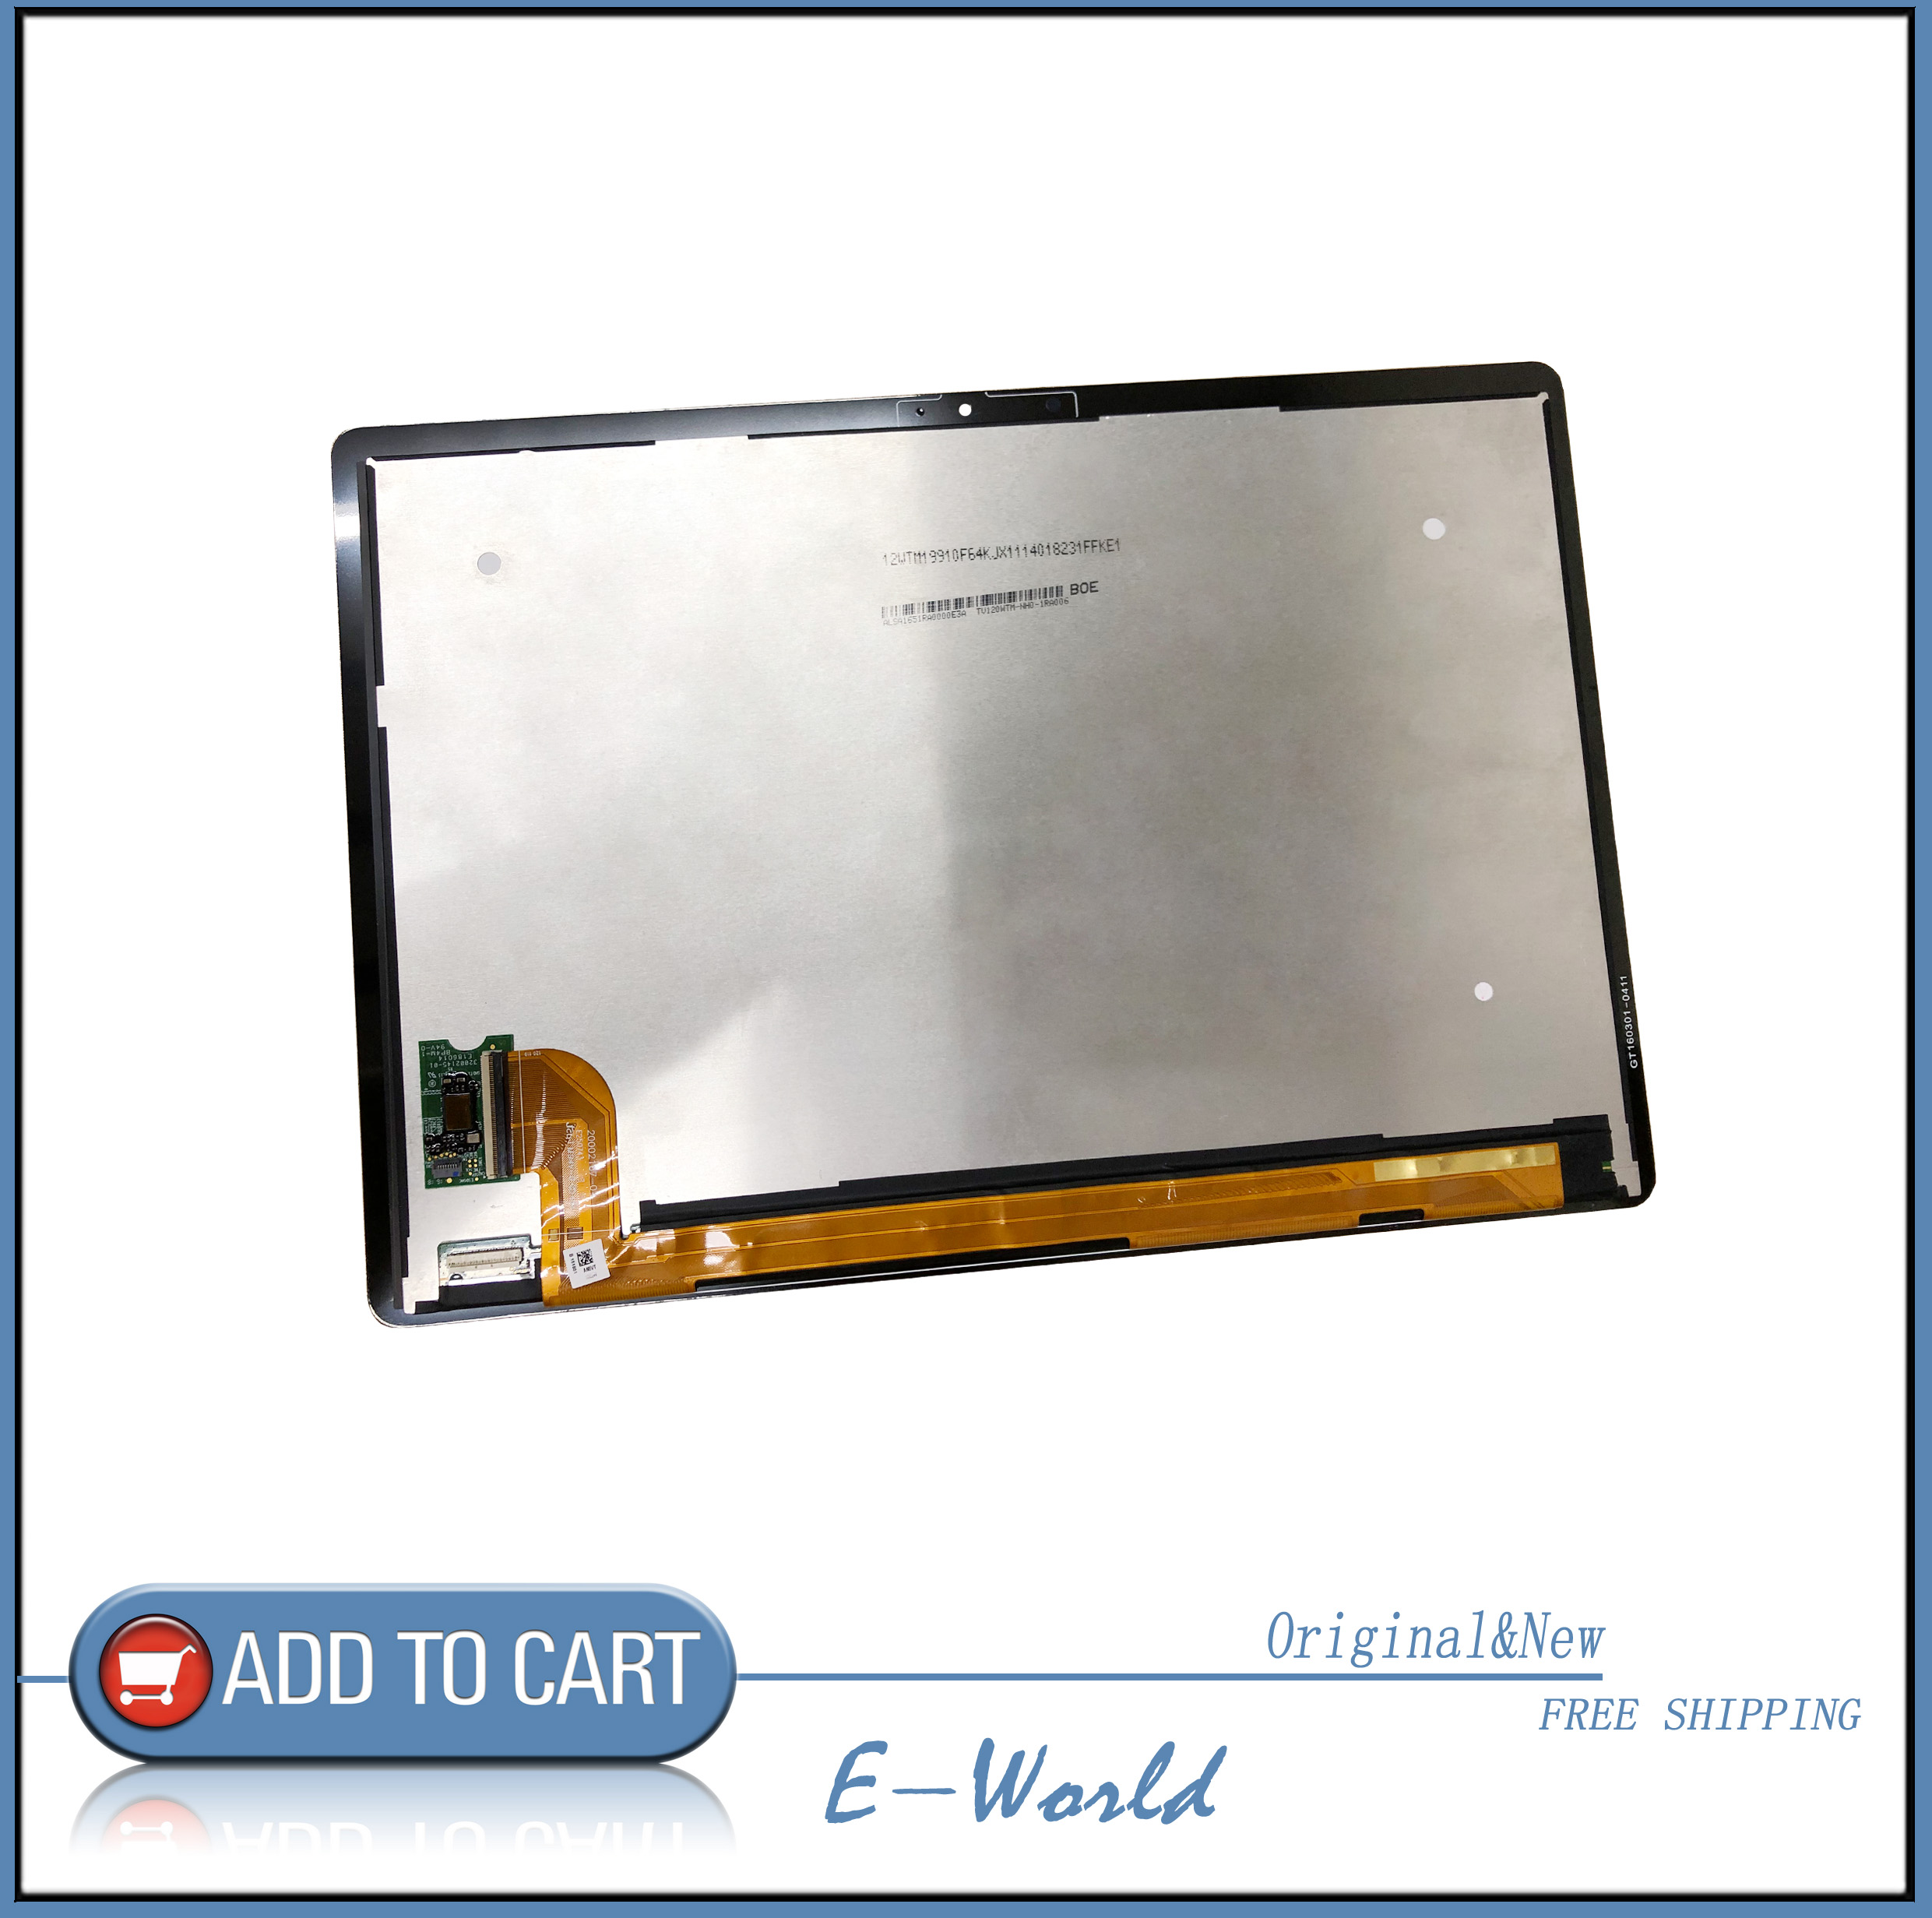 Original 12inch LCD screen with Touch screen 20002167-04 E250743 GT160301-0411 GT160301 free shippingOriginal 12inch LCD screen with Touch screen 20002167-04 E250743 GT160301-0411 GT160301 free shipping